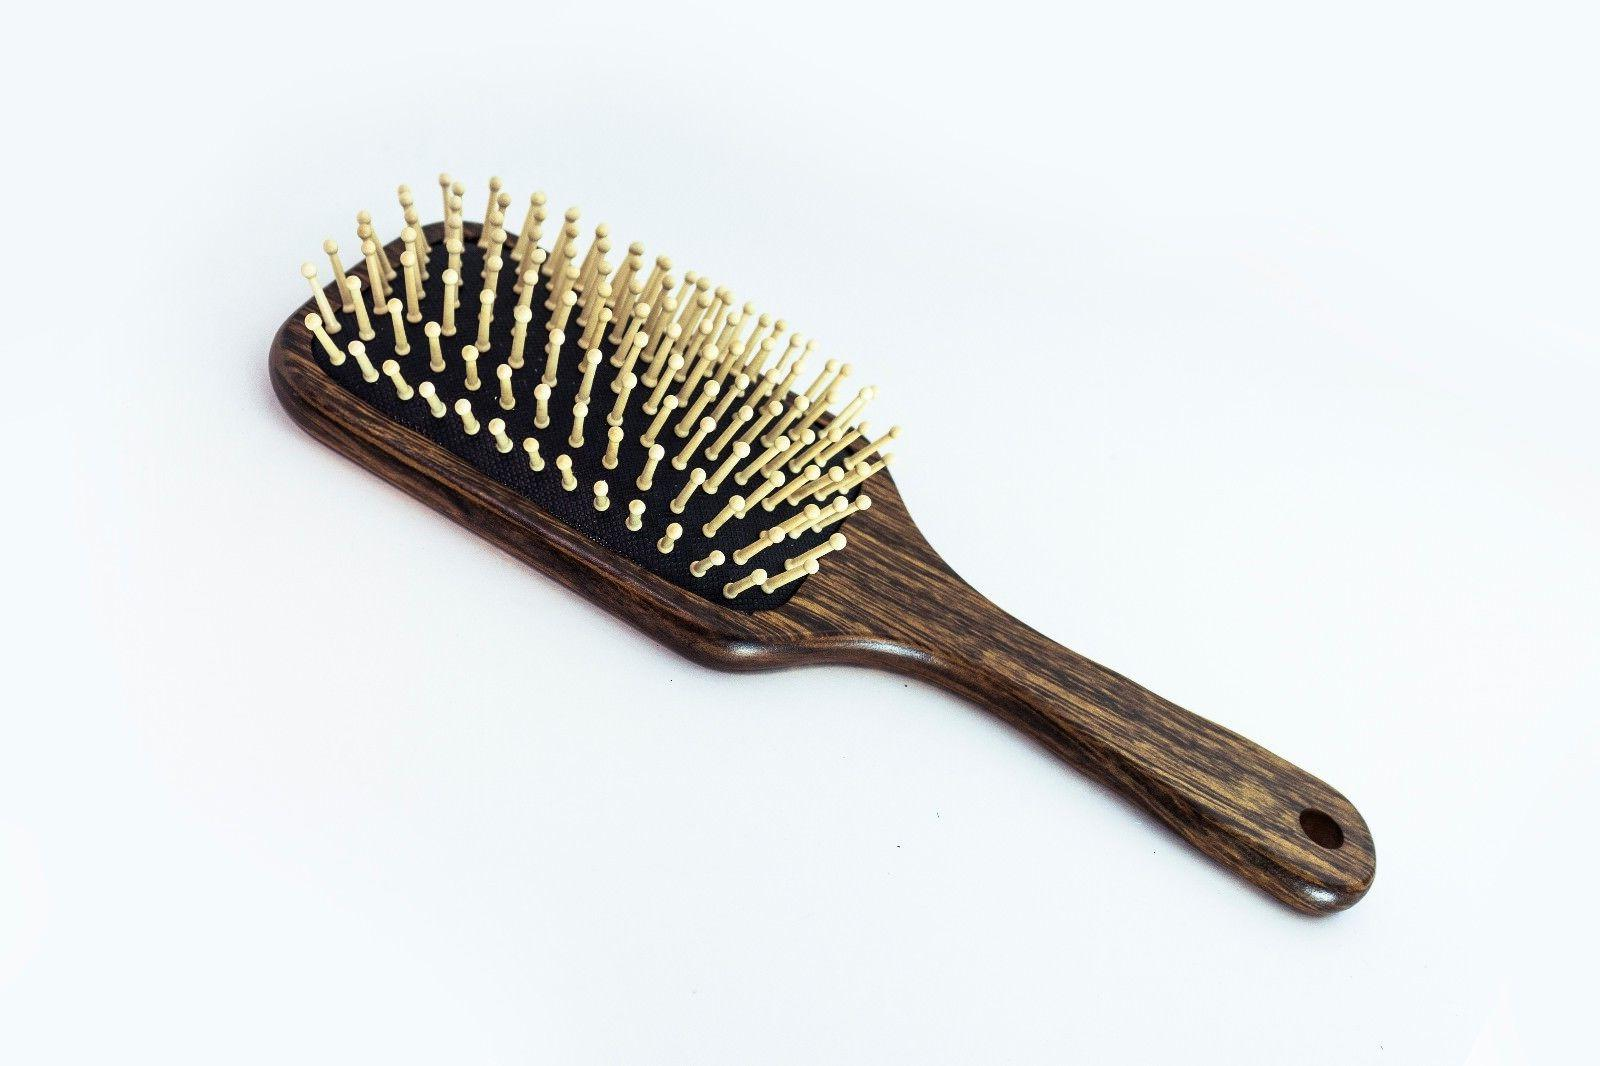 BeautyFrizz Eco Paddle Brush, Non-Irritating for Daily Use.